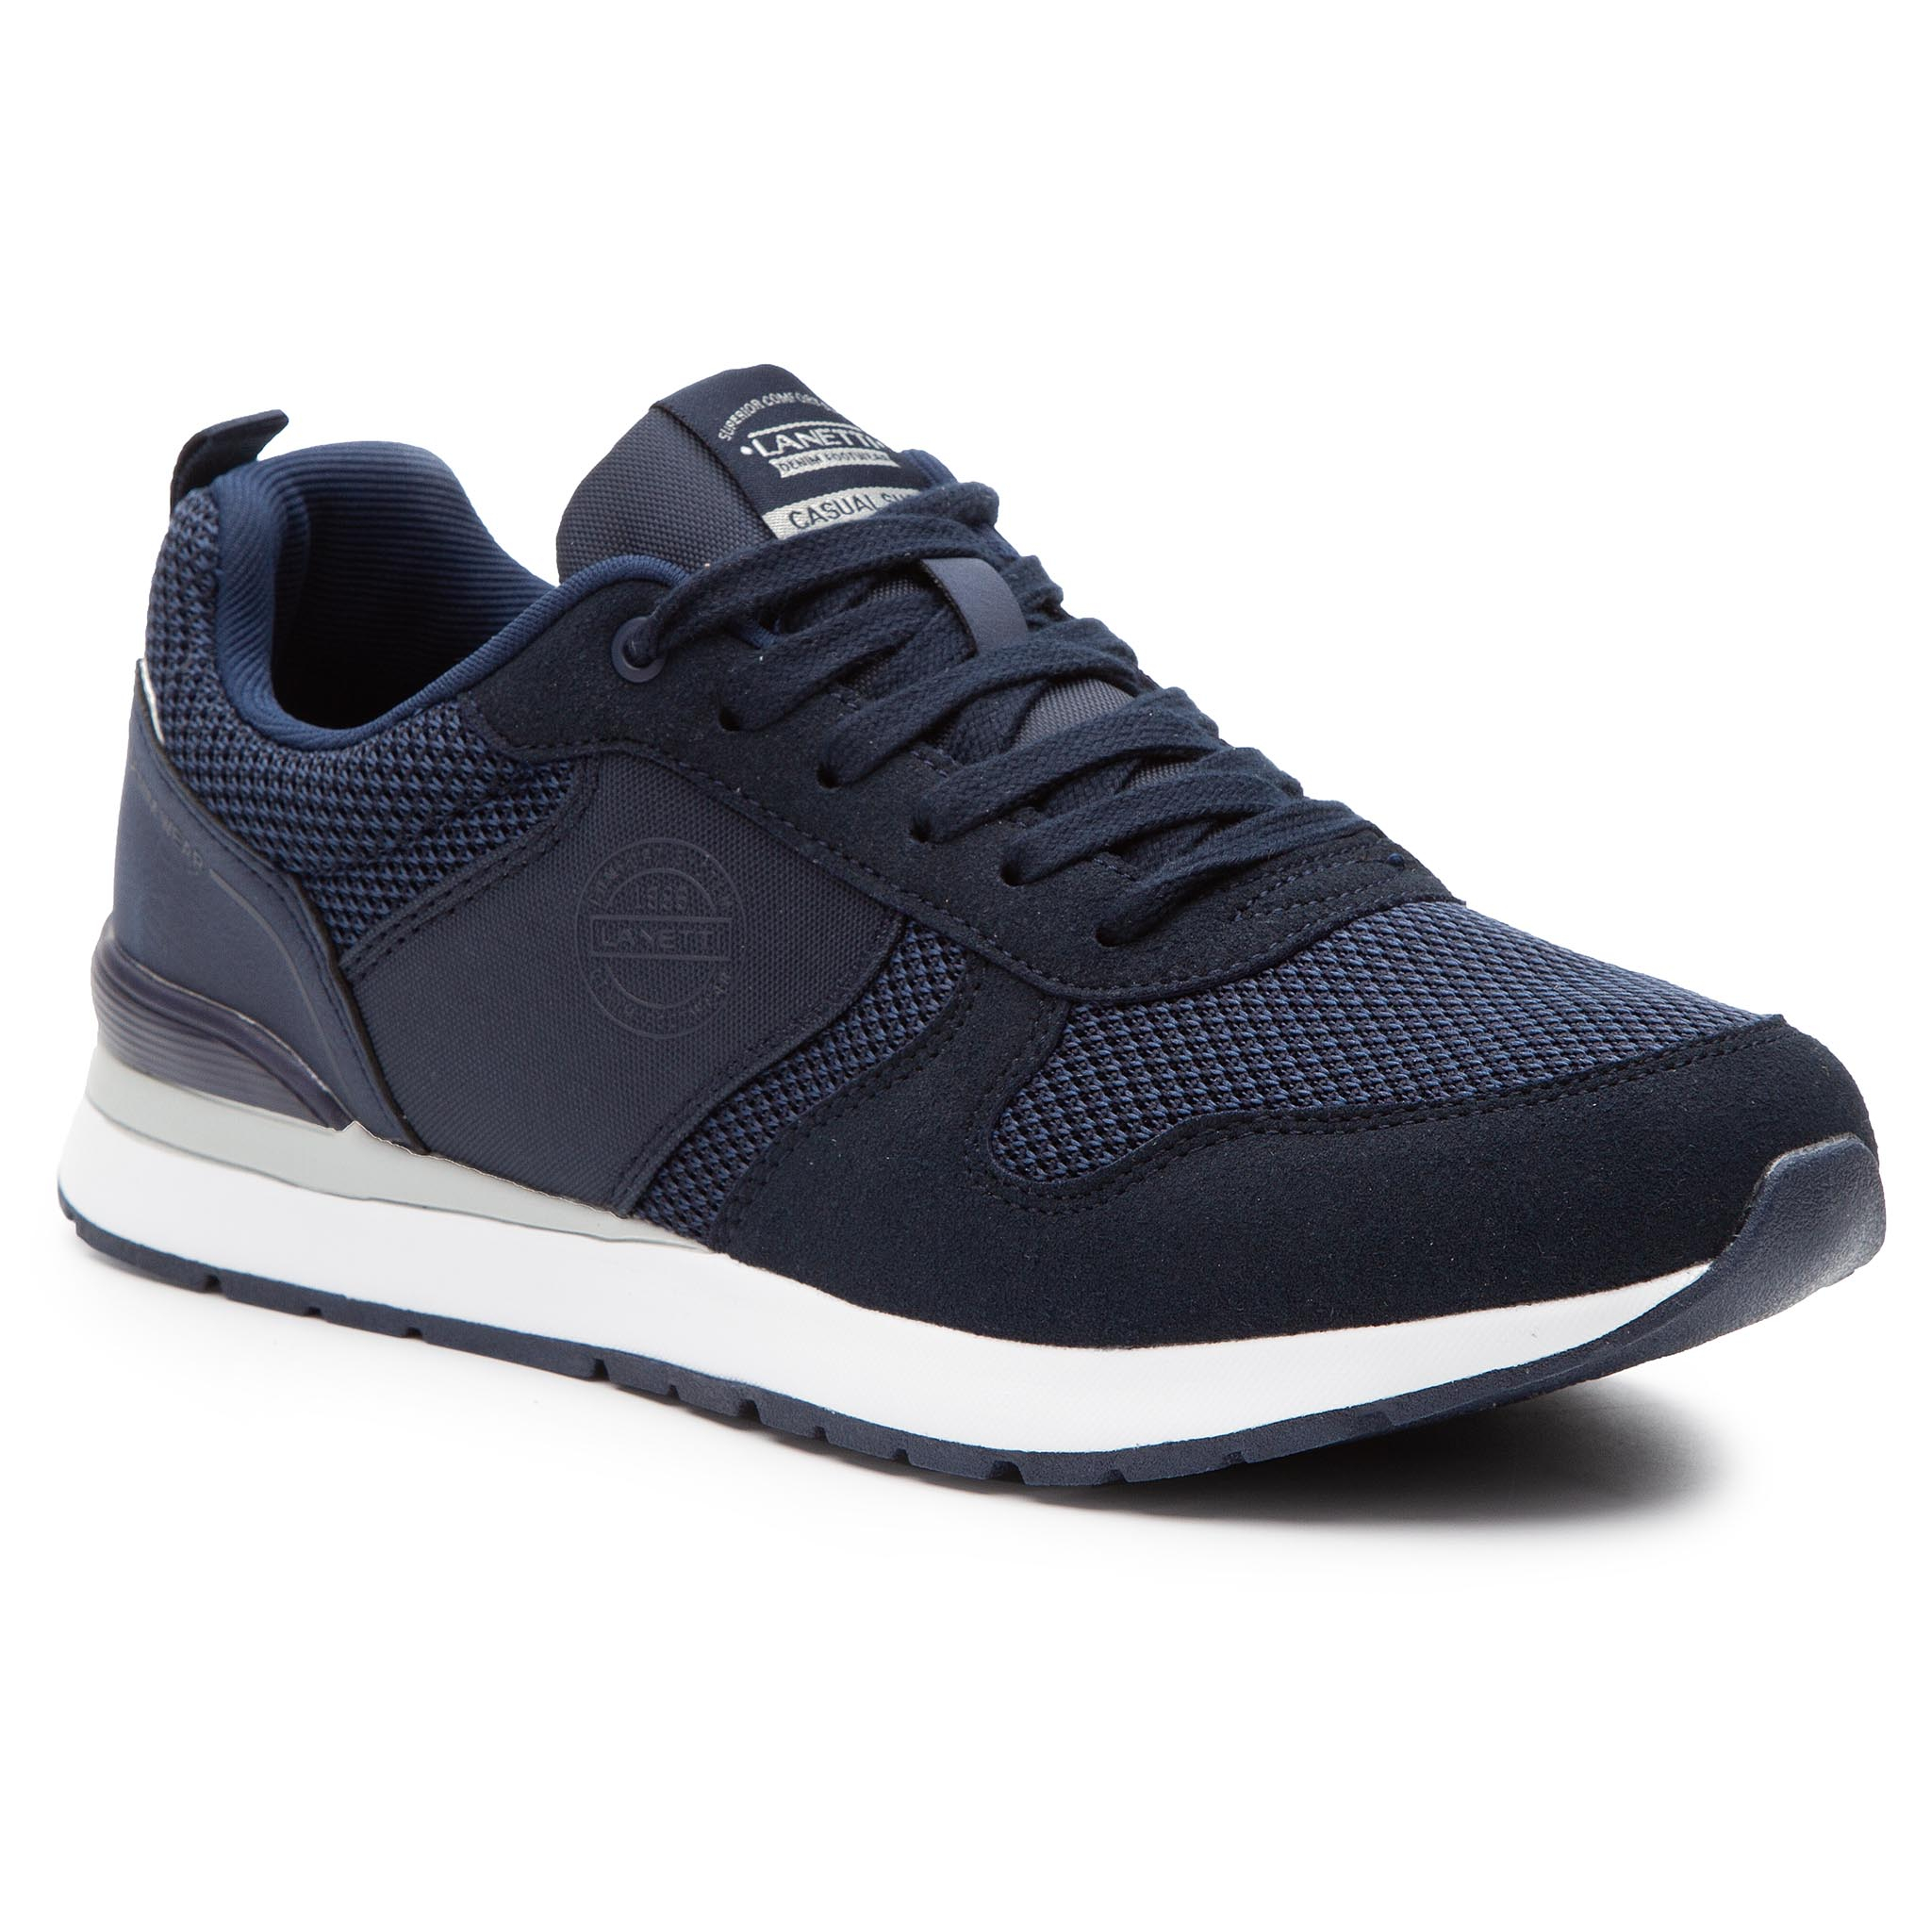 Sneakers LANETTI - MP07-17131-07 Navy